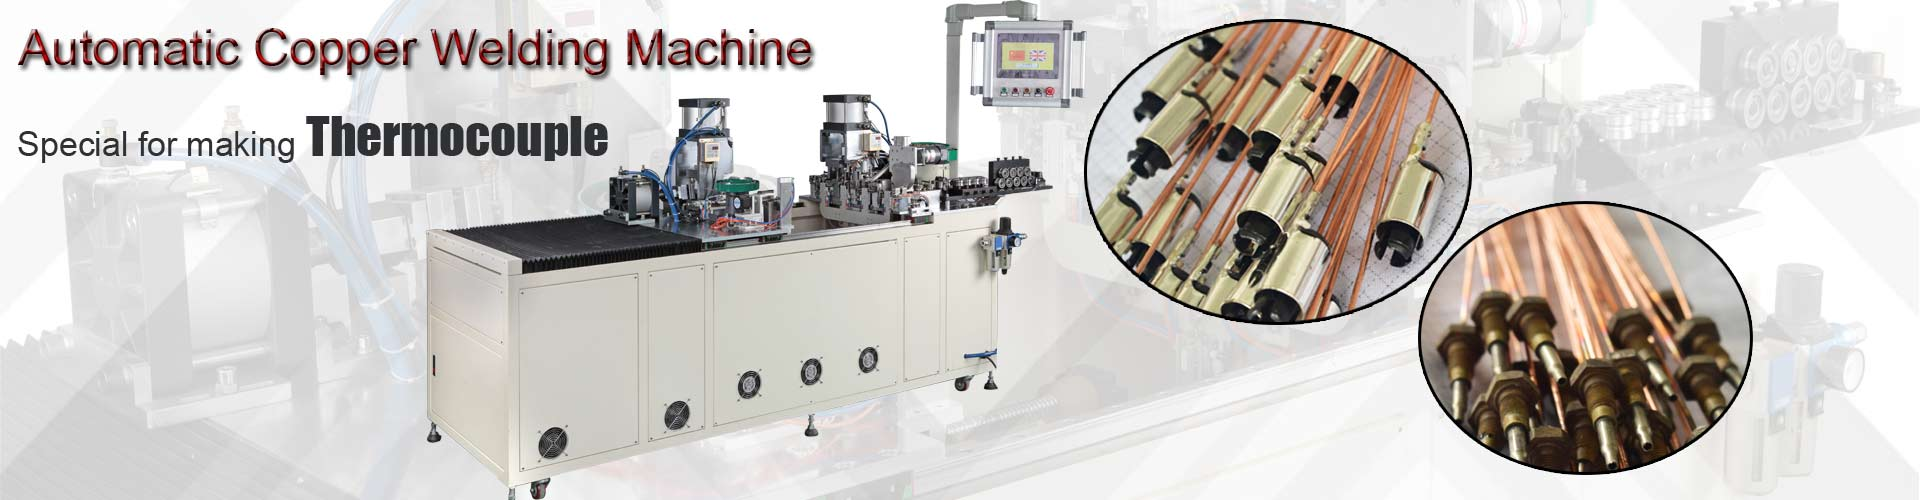 Am612 Cable Wire Harness Tape Wrapping Machine Shenzhen Aituo Wiring Automation Device Coltdshenzhen Coltd